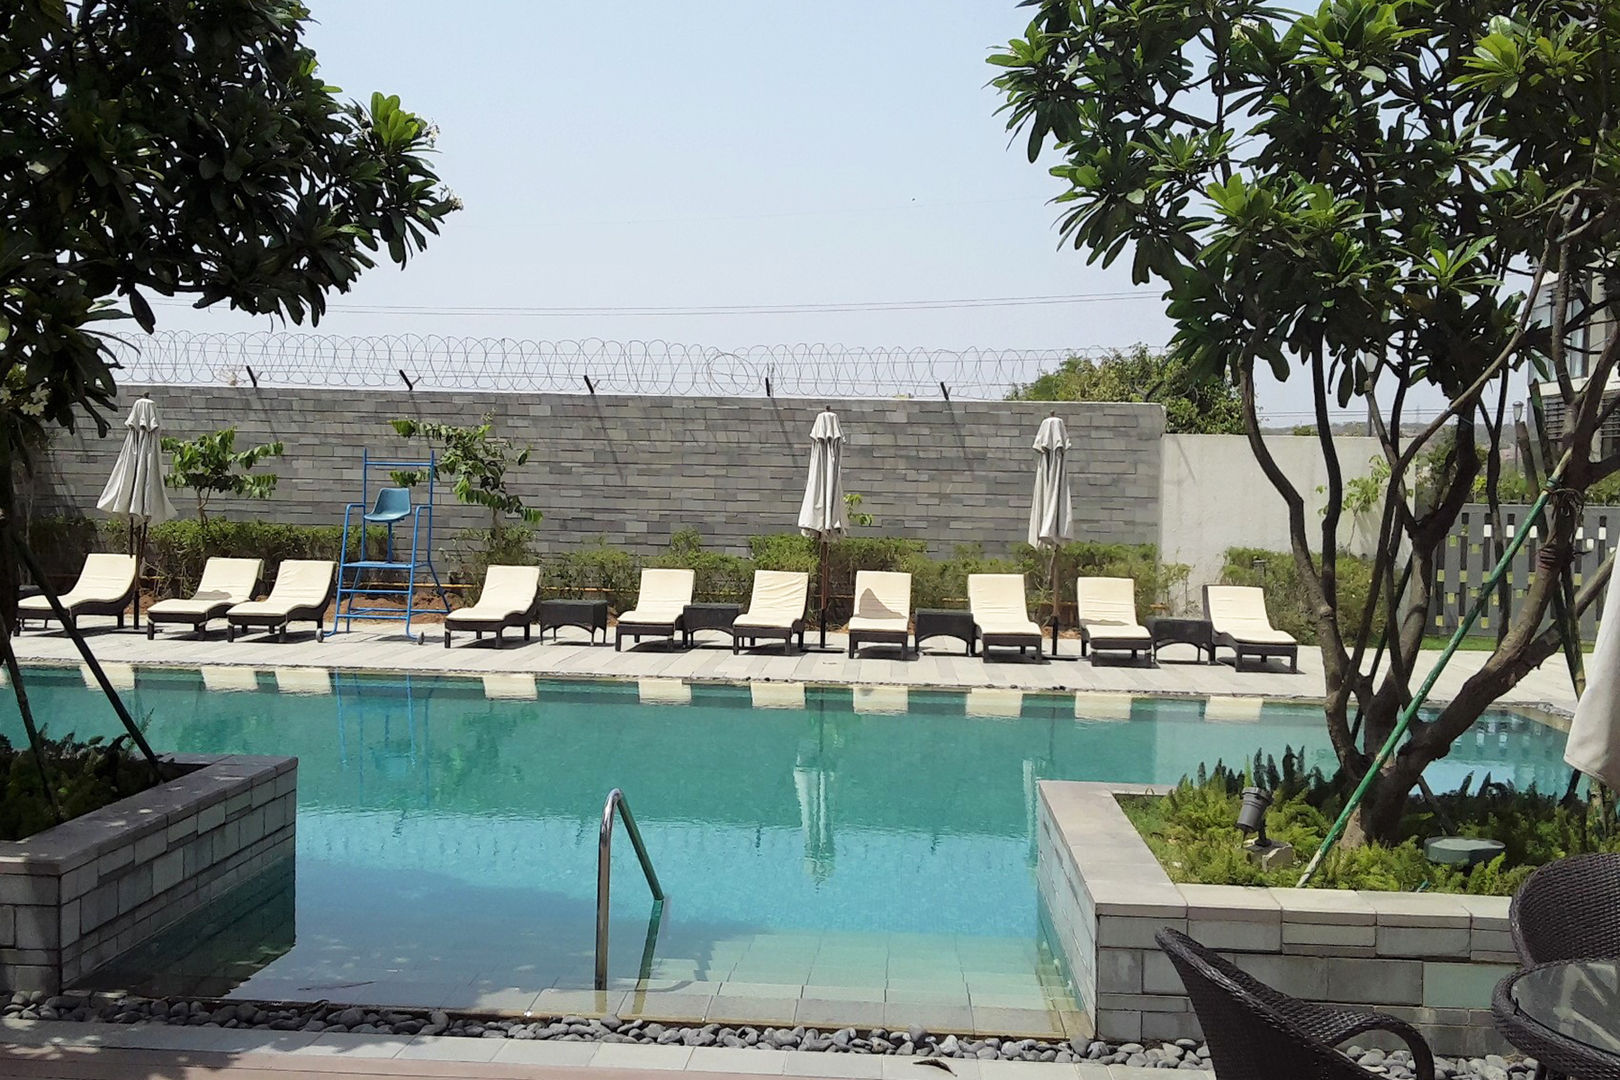 3 BHK Flats in Gurgaon